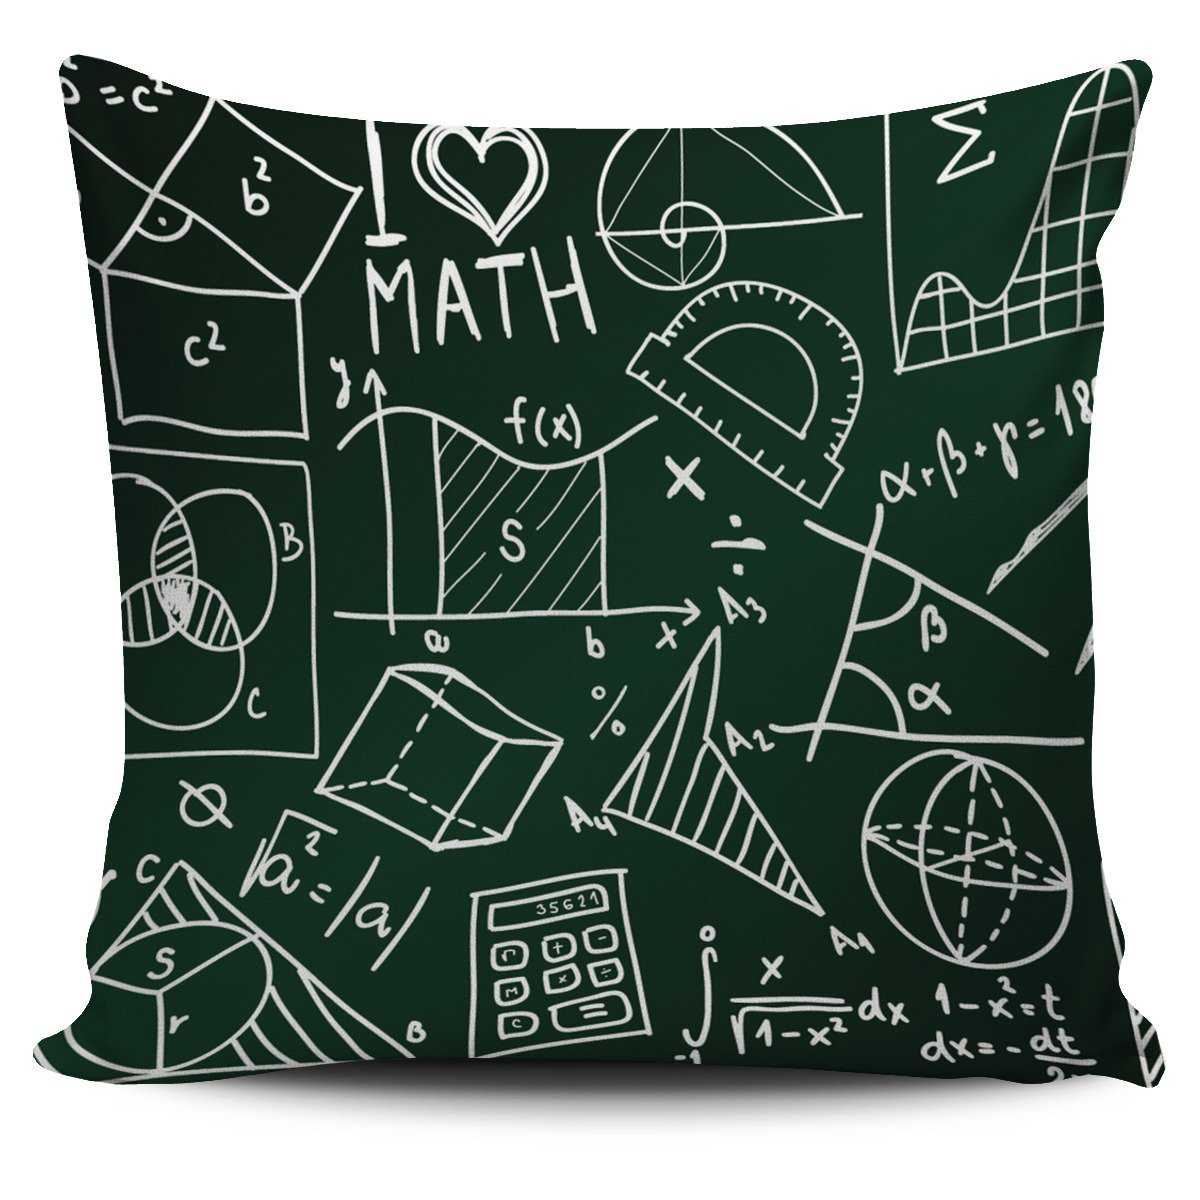 i love math pillow cover for math lovers - chiliprints